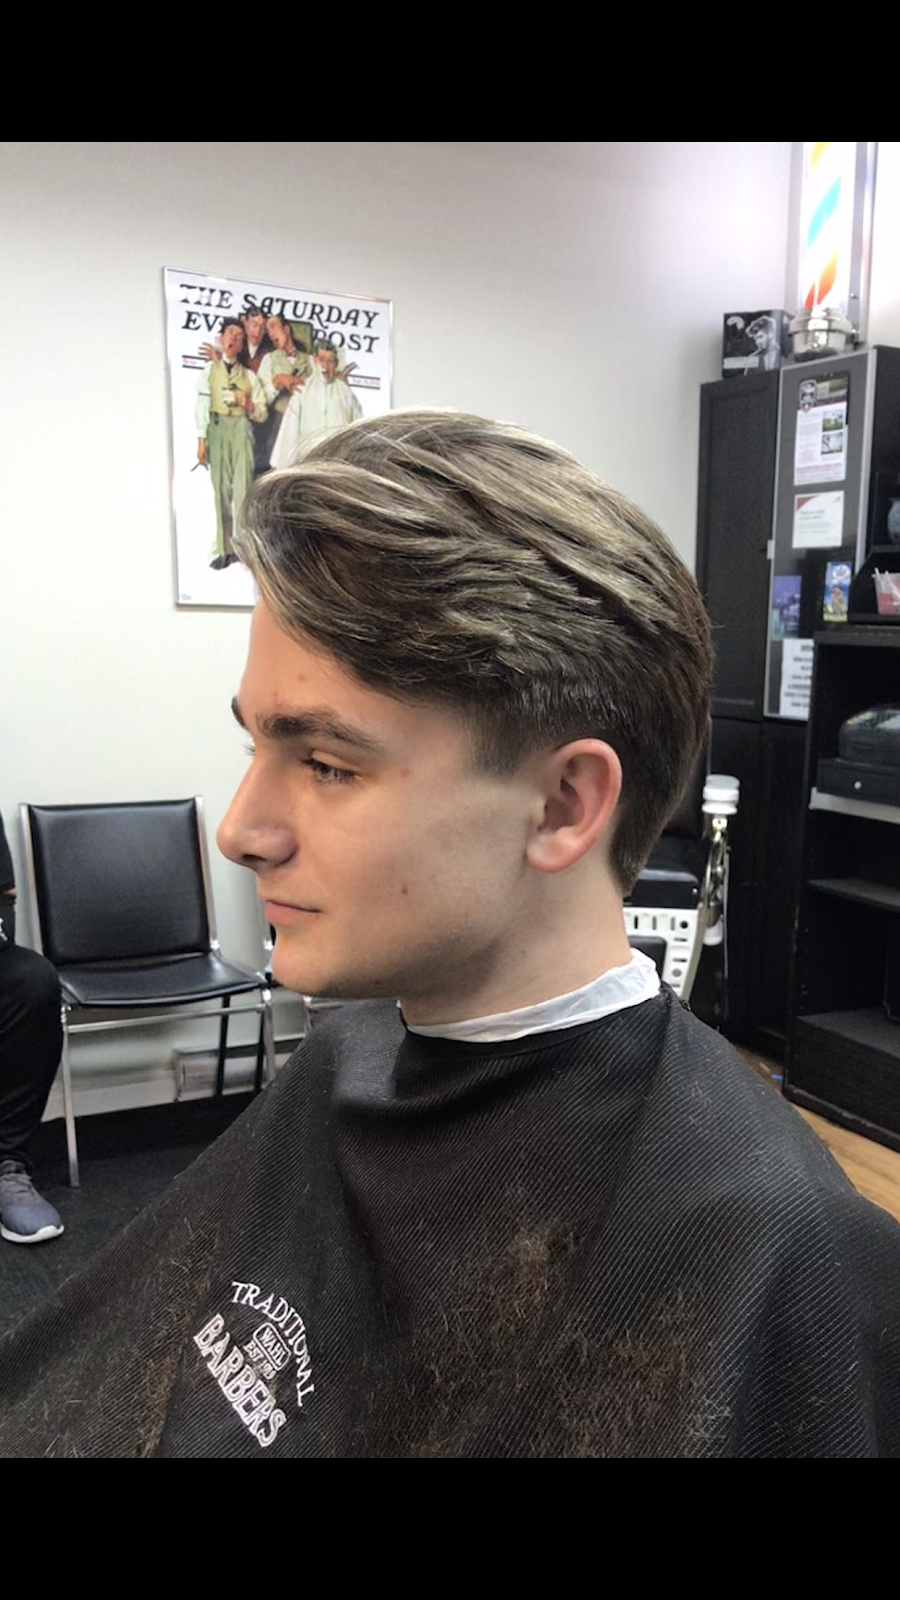 Nicolettes Barbershop | hair care | 2354 Anora Dr, Abbotsford, BC V2S 5P8, Canada | 6048533588 OR +1 604-853-3588